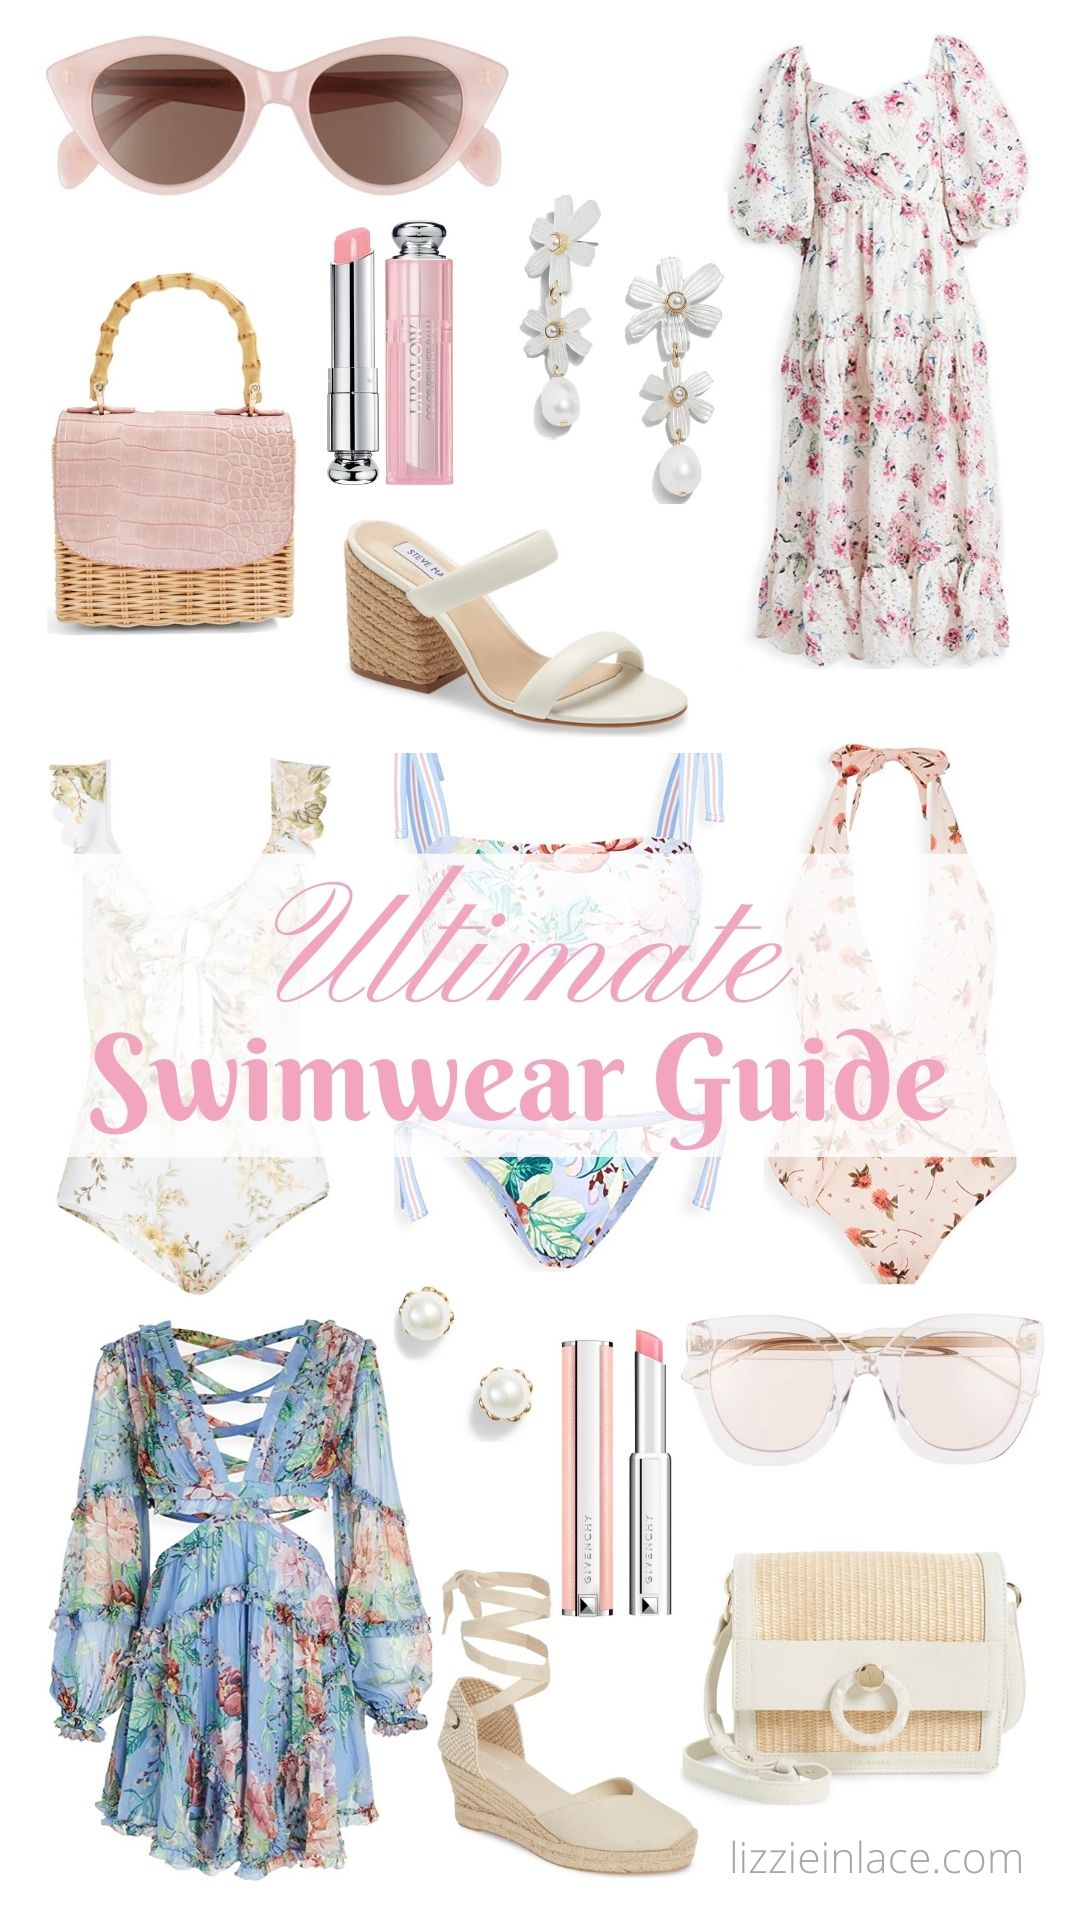 Ultimate Swimwear Guide for the Girly Girl